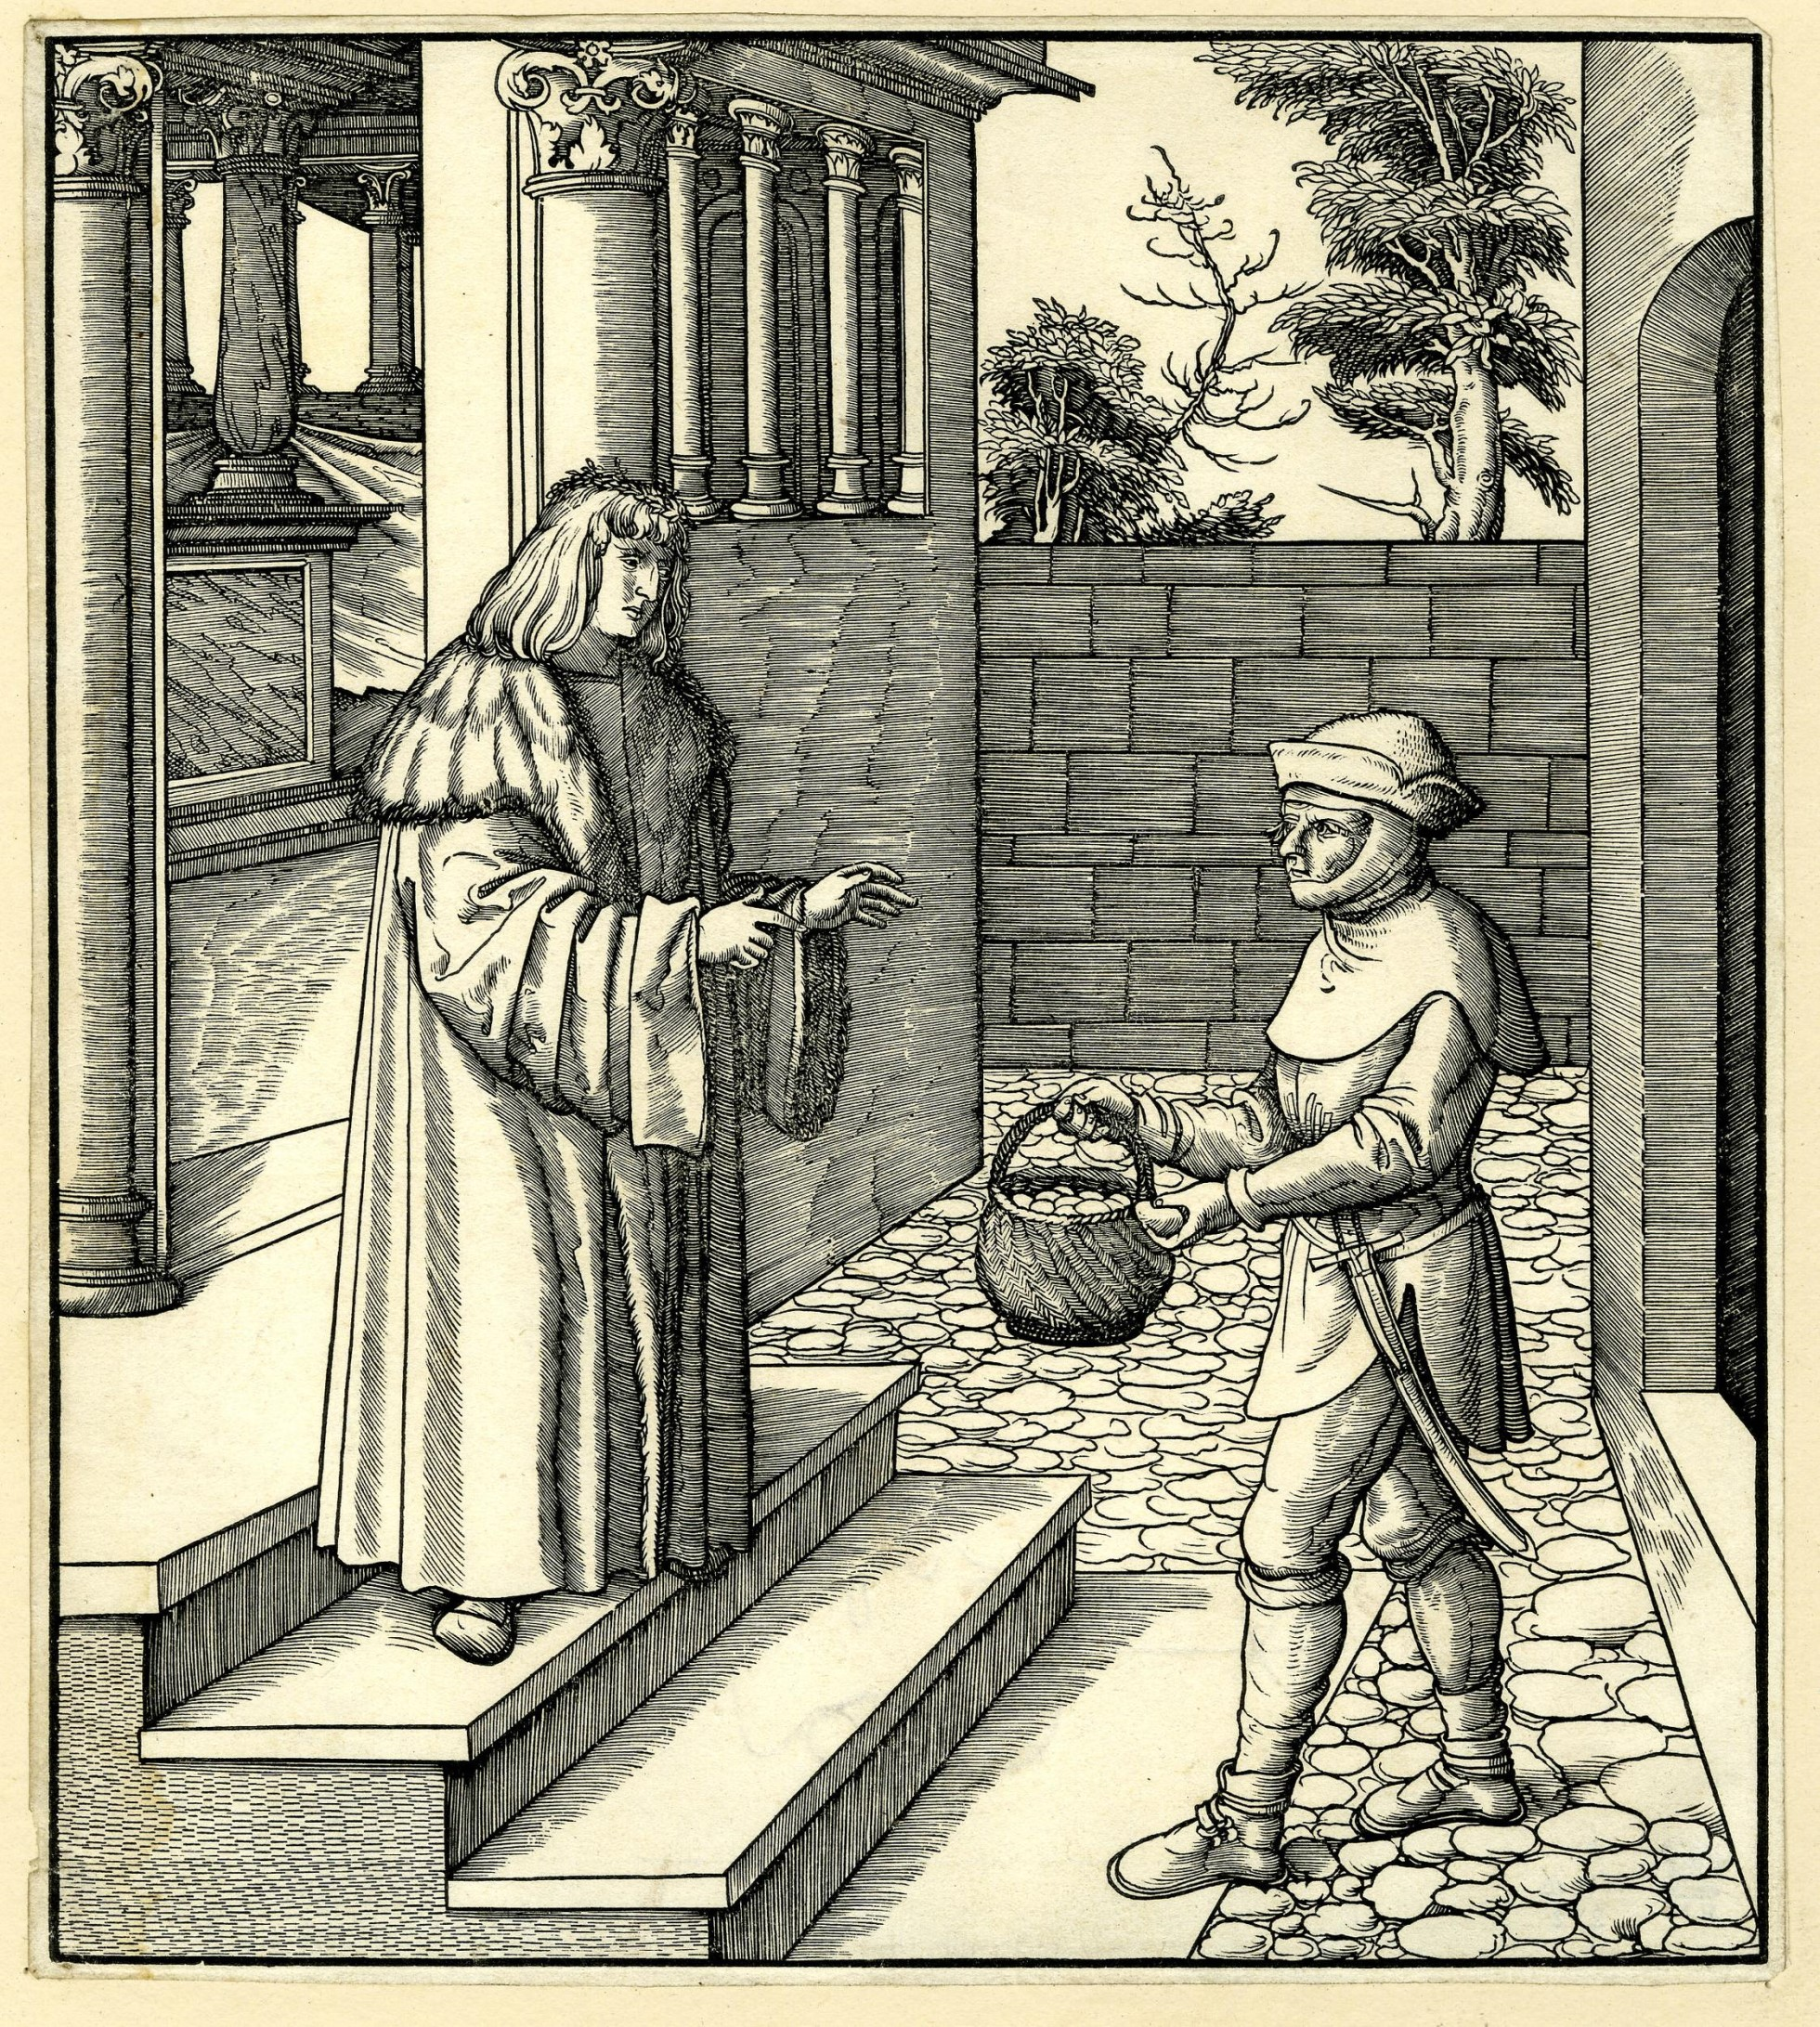 Print showing a man standing on some stairs leading up to a columned hallway, in the yard a farmer appraches him holding a basket with eggs.